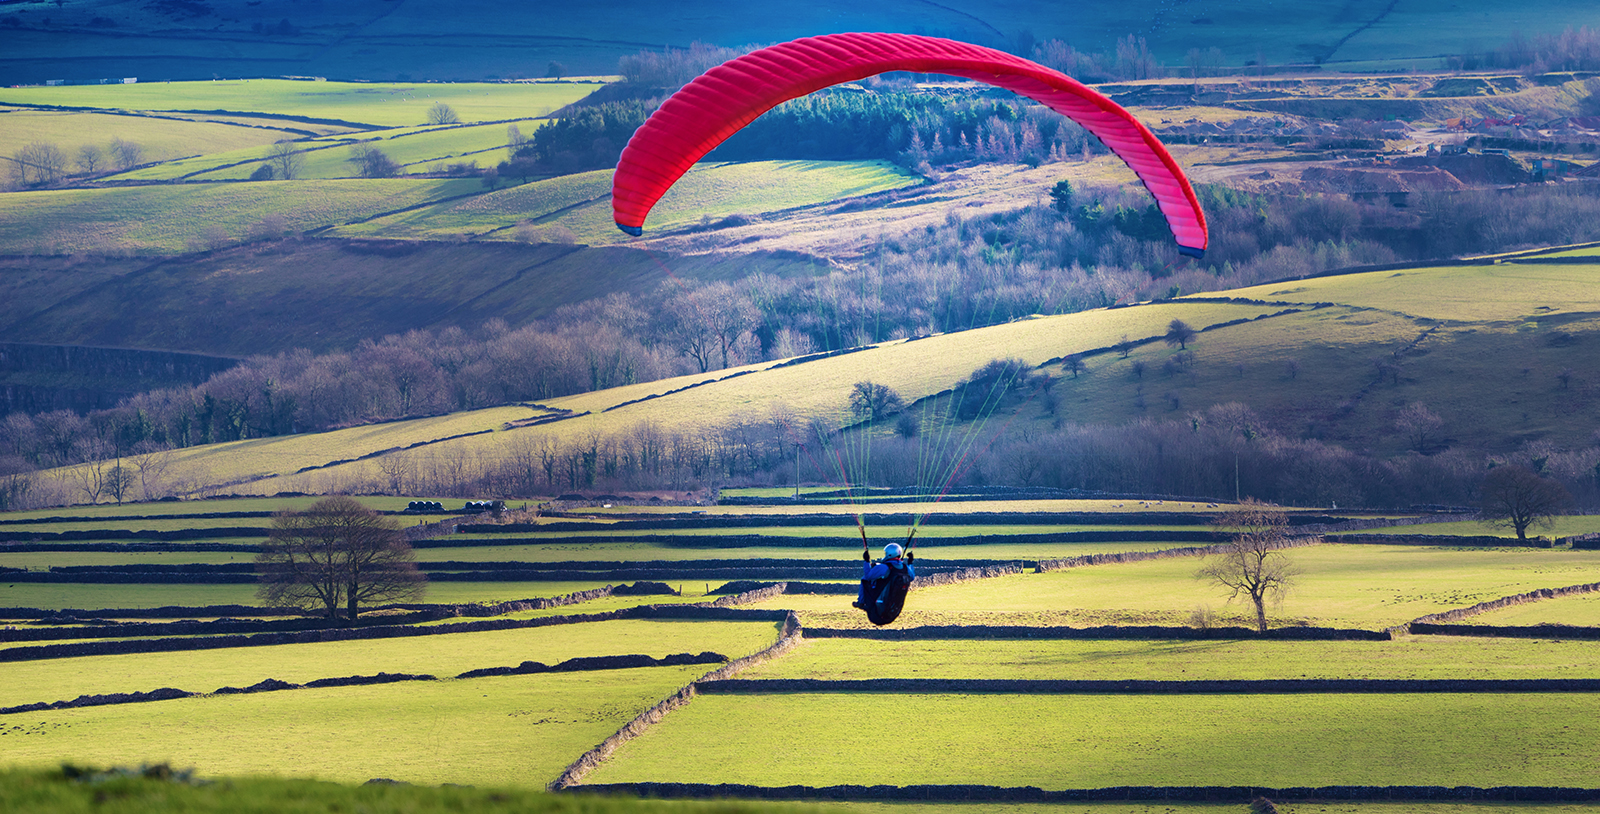 Paragliding in the Peak District